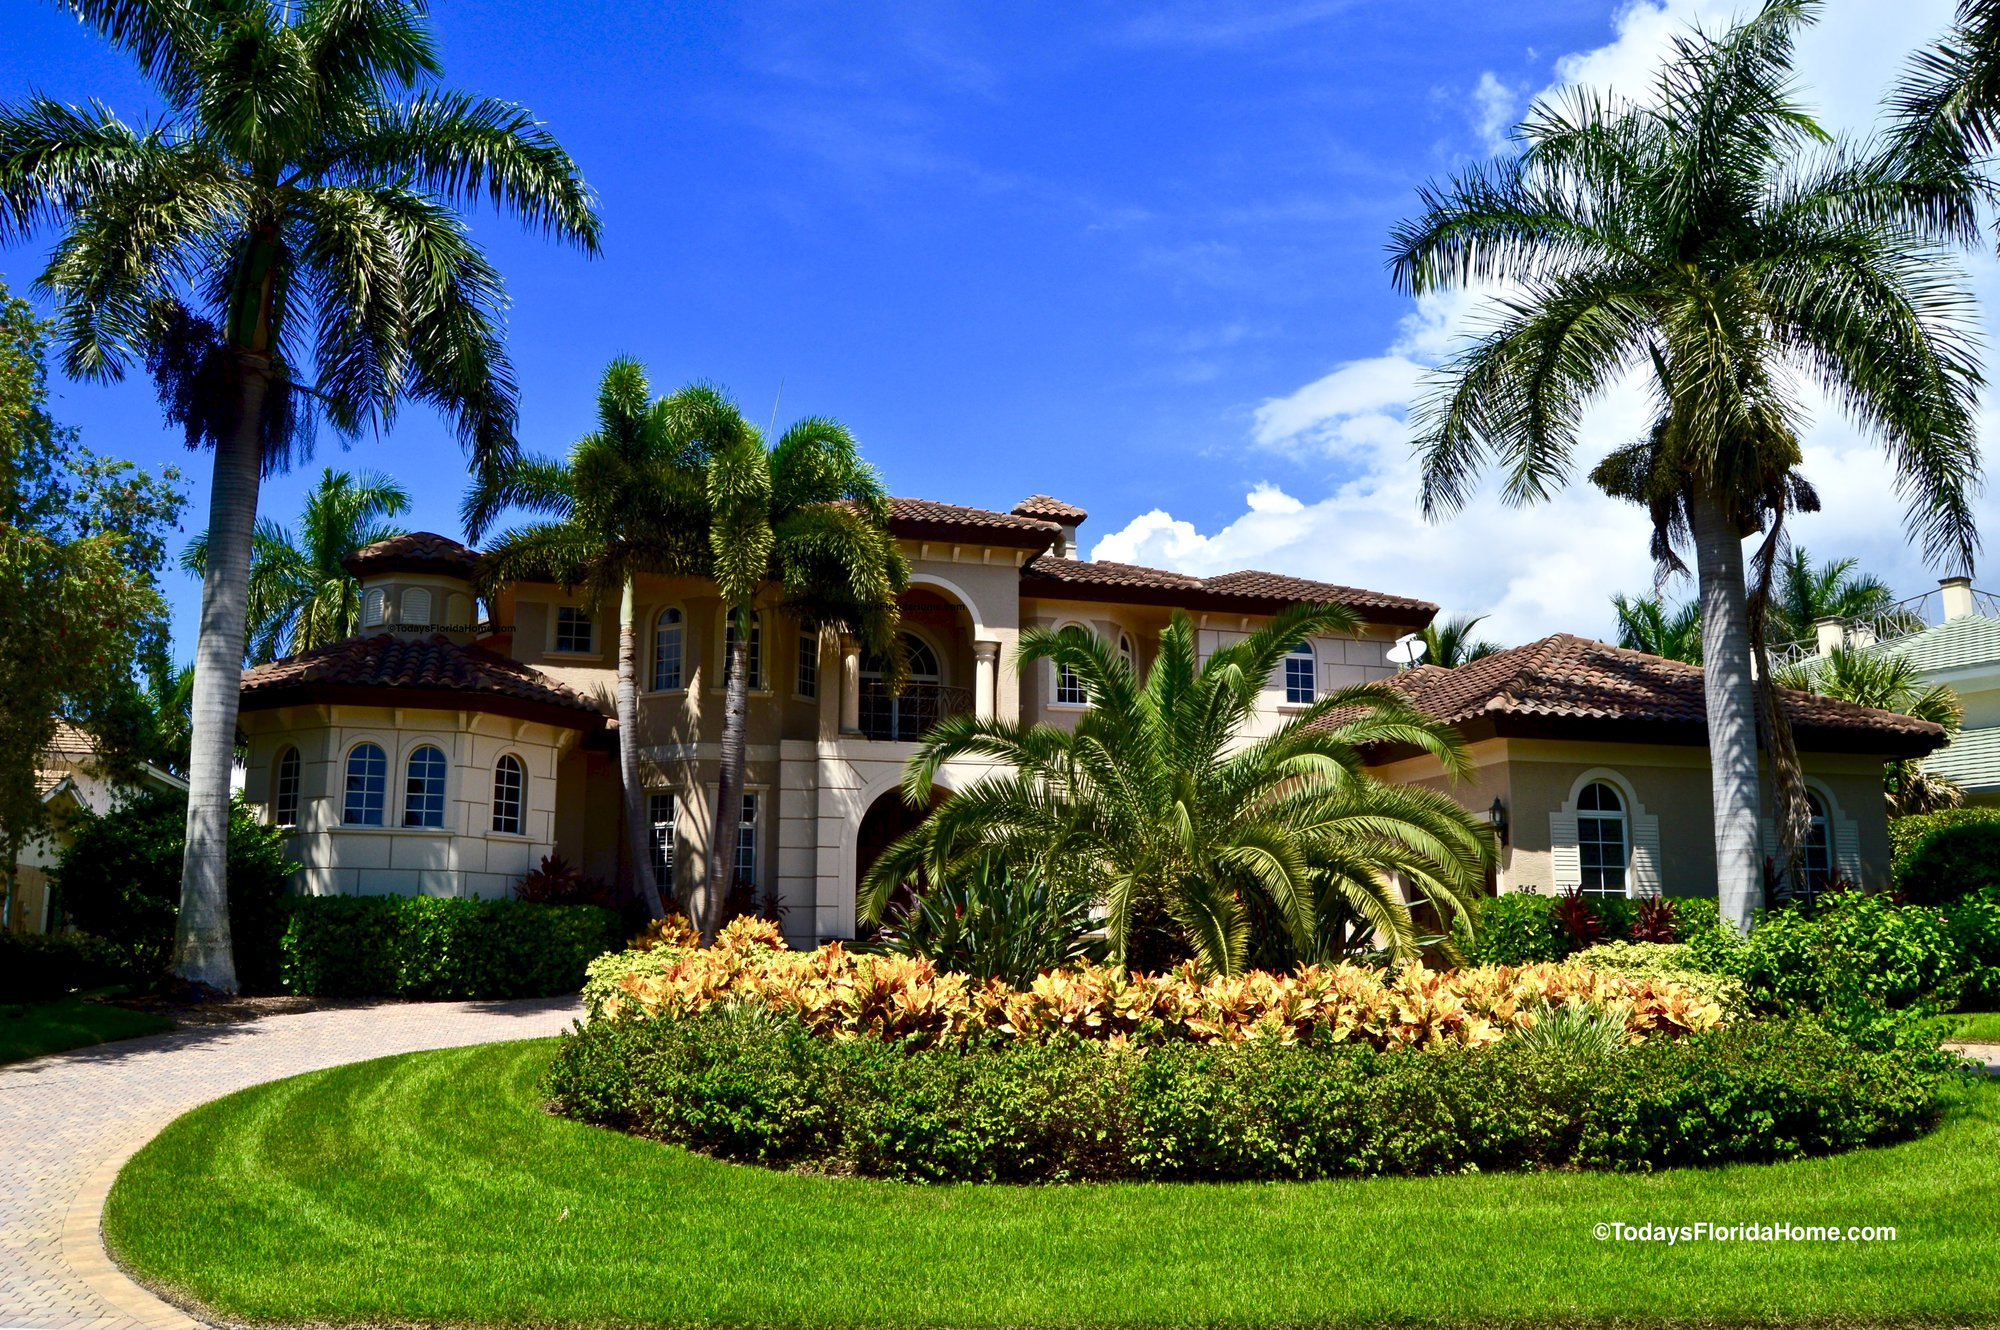 Coquina Sands, Coquina Sands Homes for Sale, Waterfront Home Coquina Sands, Naples Gulf Access Homes, Naples Waterfront, Waterfrint Home Naples, Waterfront Florida, Florida Waterfront Home